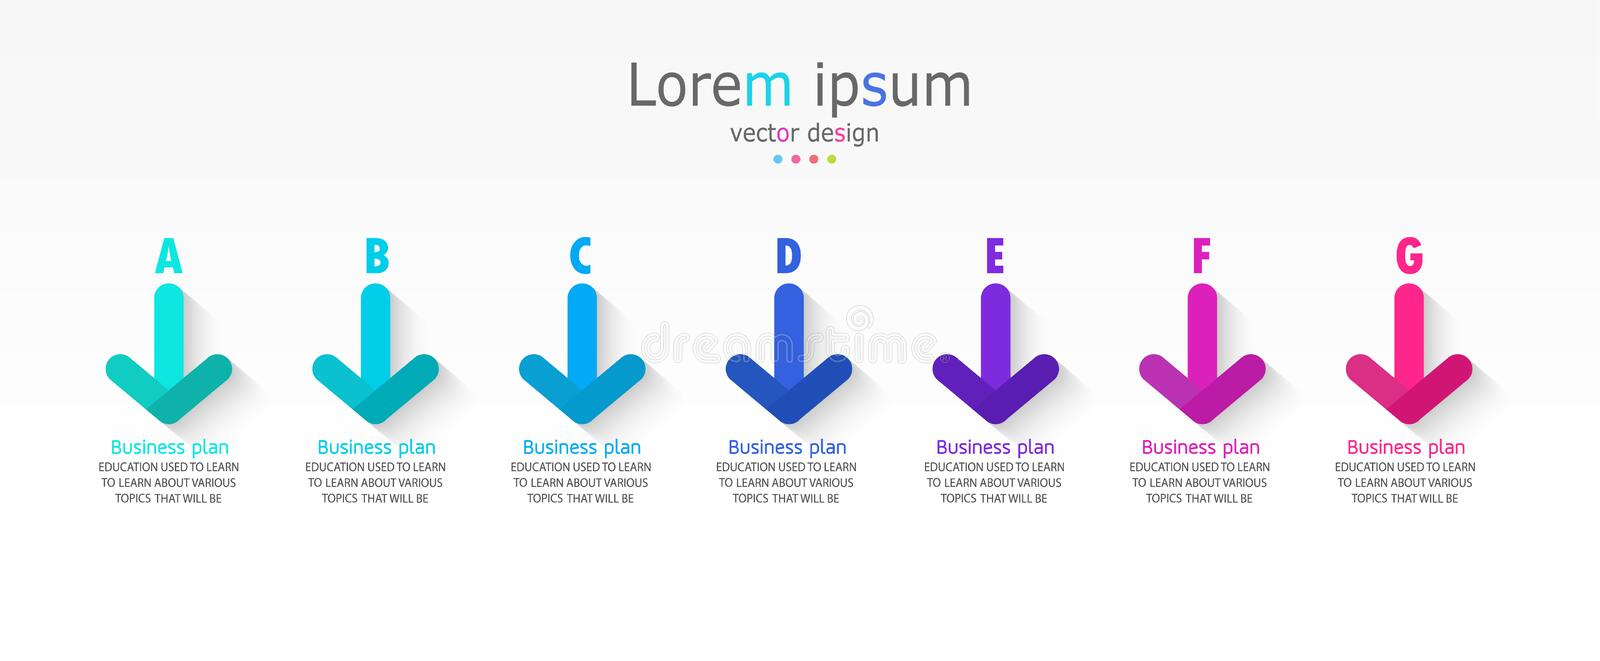 Vector illustration Can be used for process, presentations, layout, banner,info graph there 7 steps or layers. stock illustration